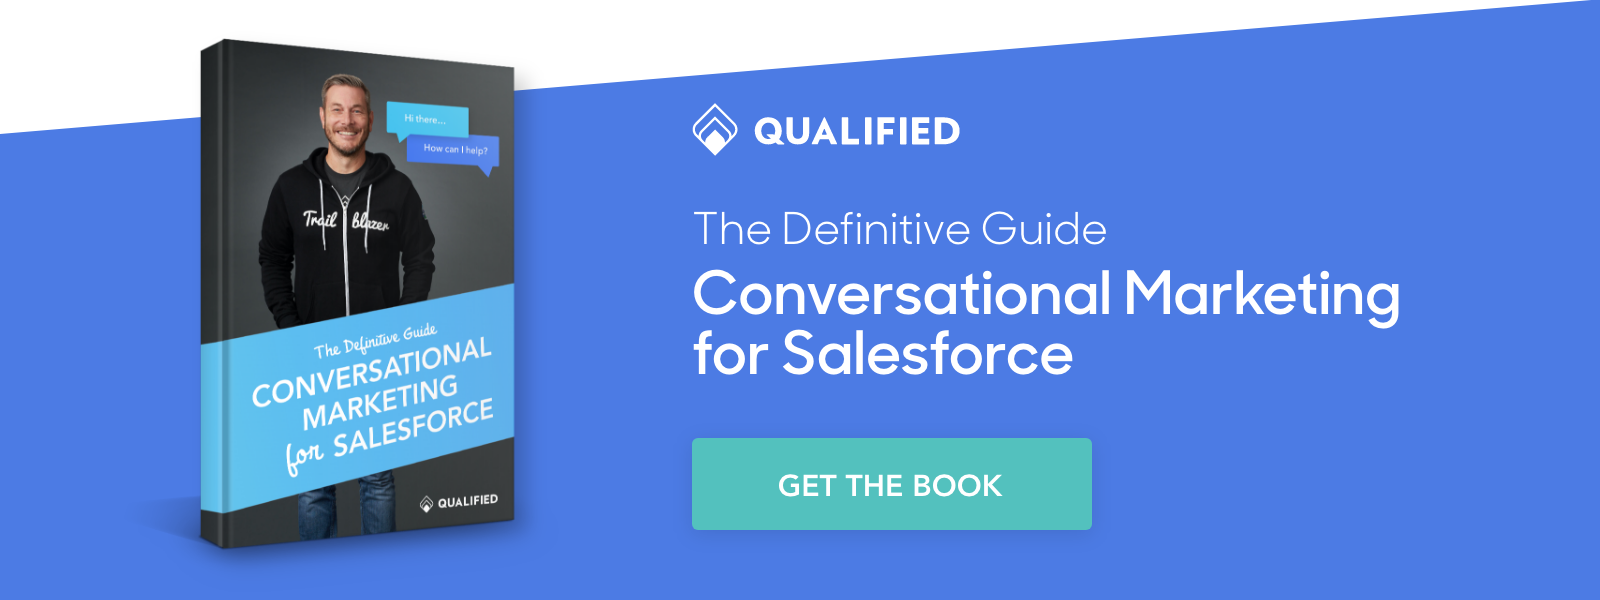 Qualified Book: The Definitive Guide to Conversational Marketing for Salesforce